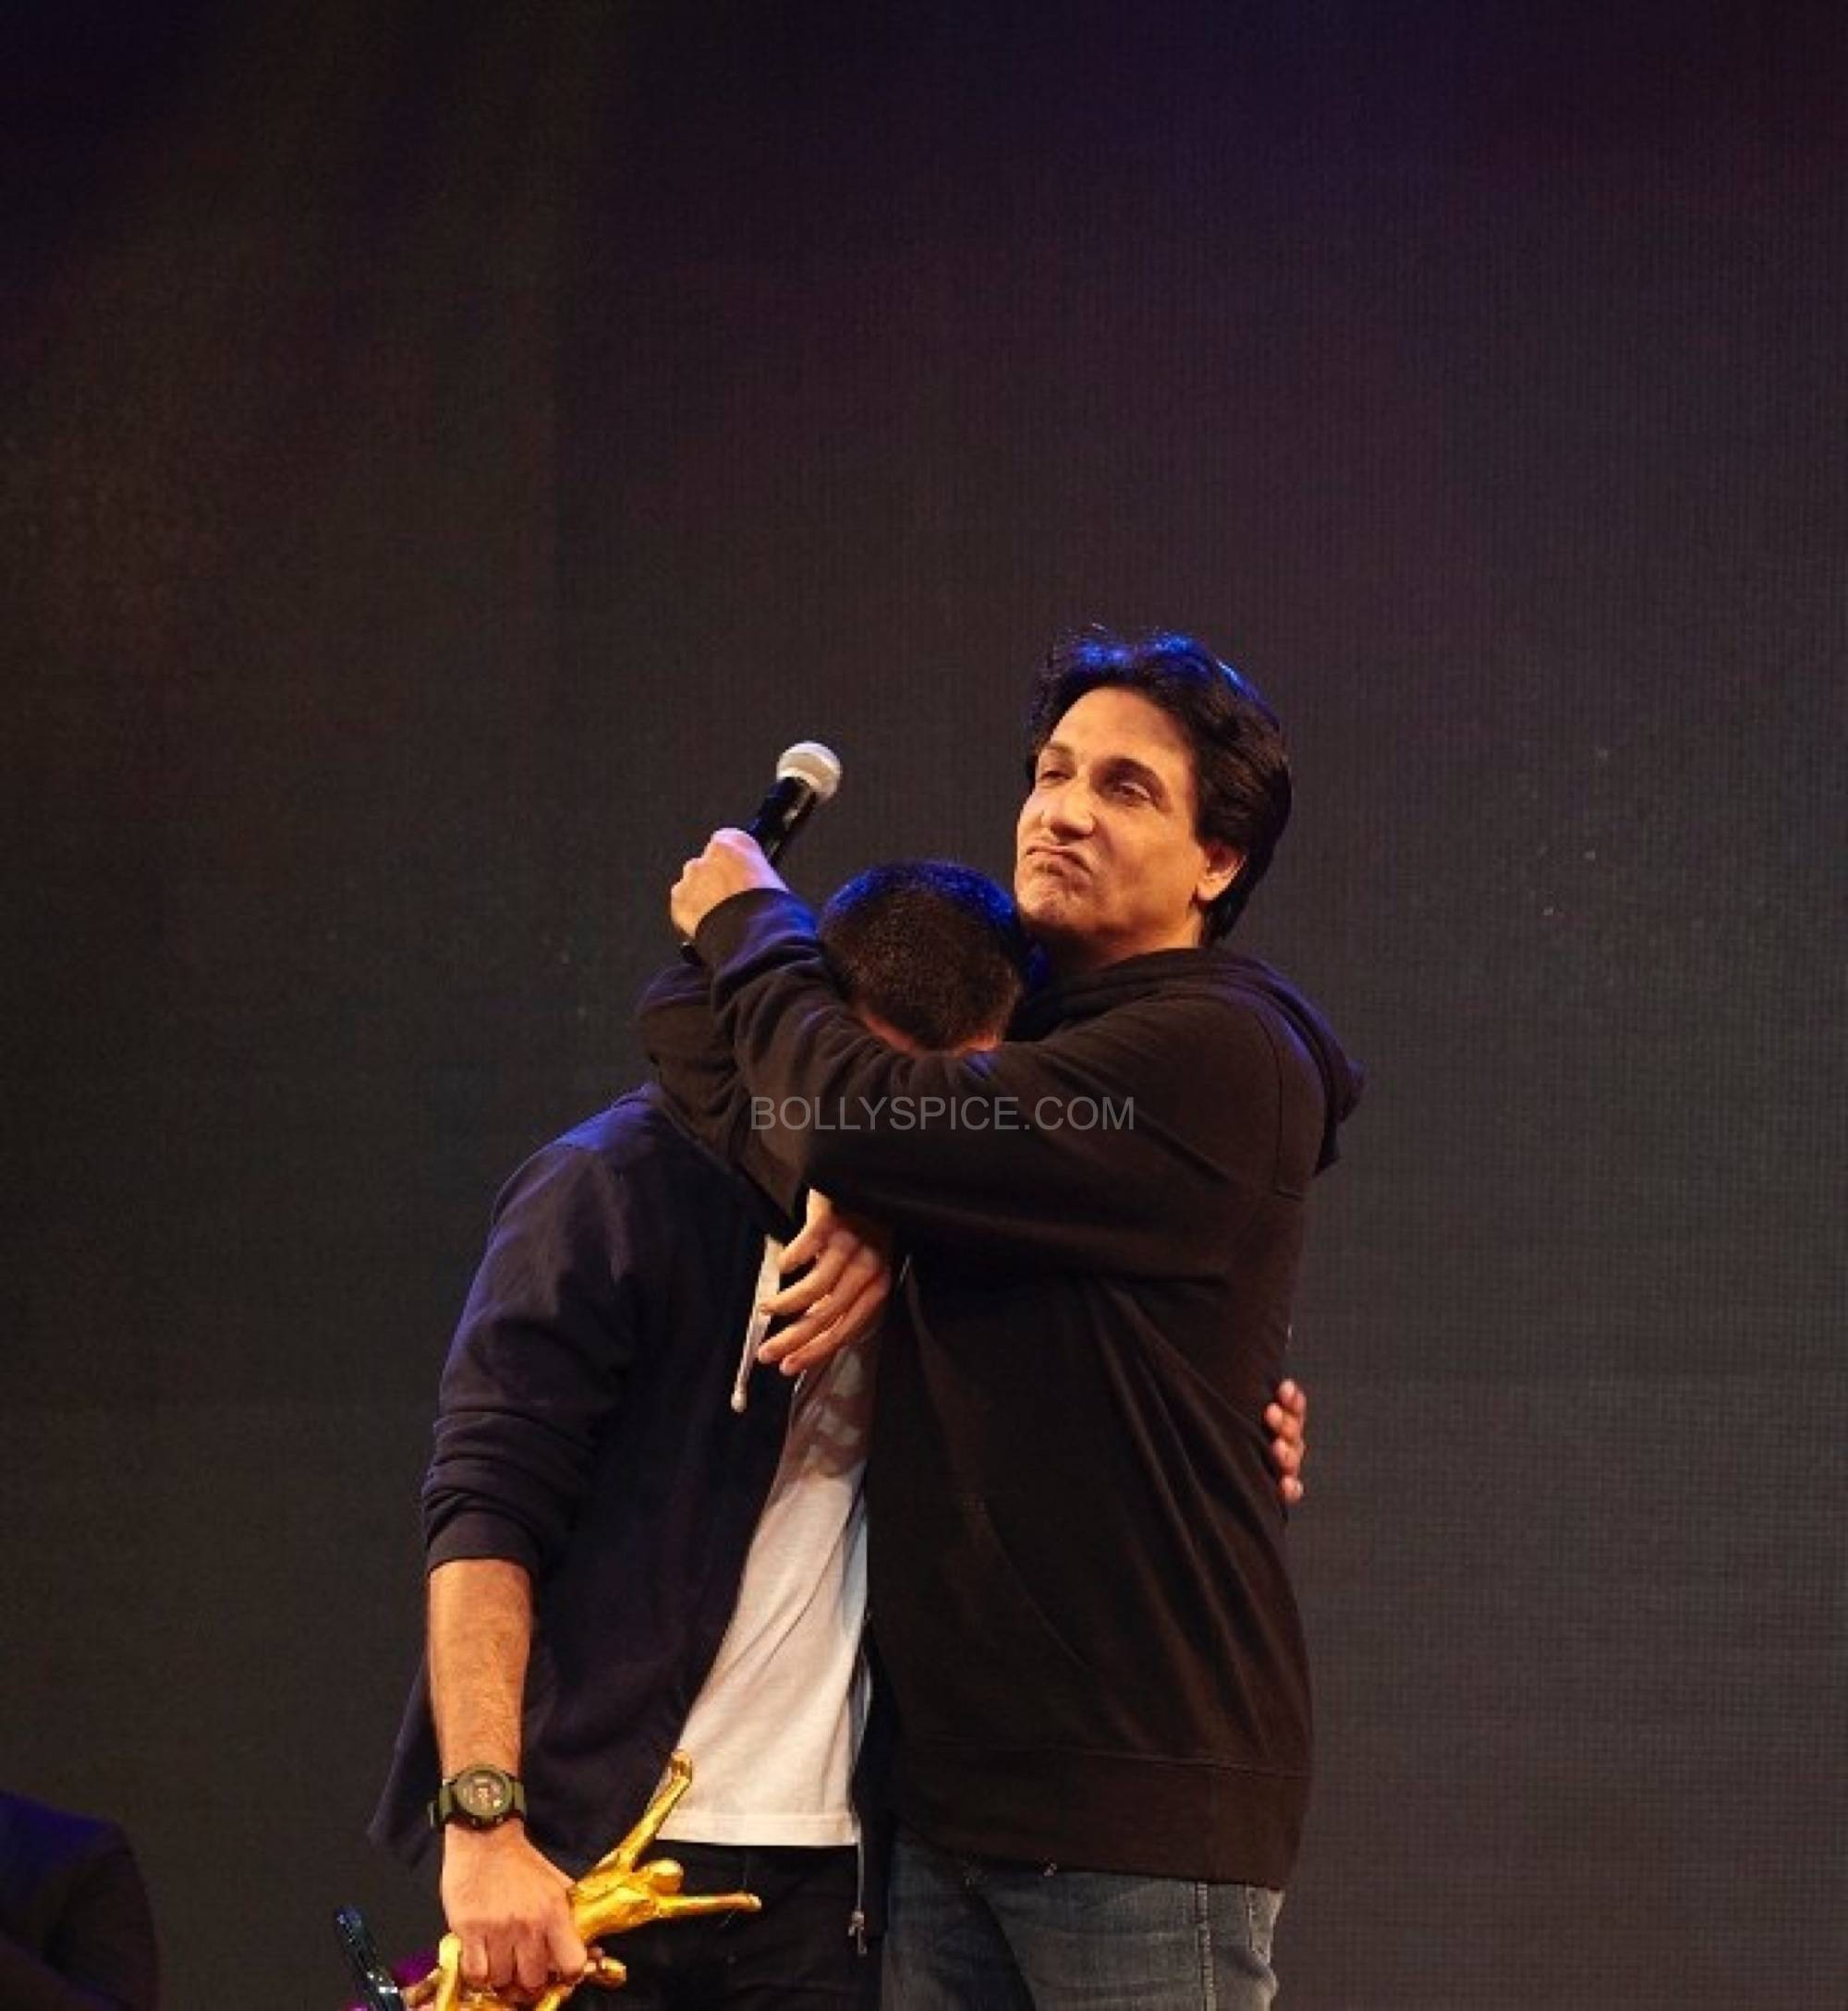 shahidshiamak6 Shahid and Shahids Brother Ishaan Named Shiamaks Most Promising Students